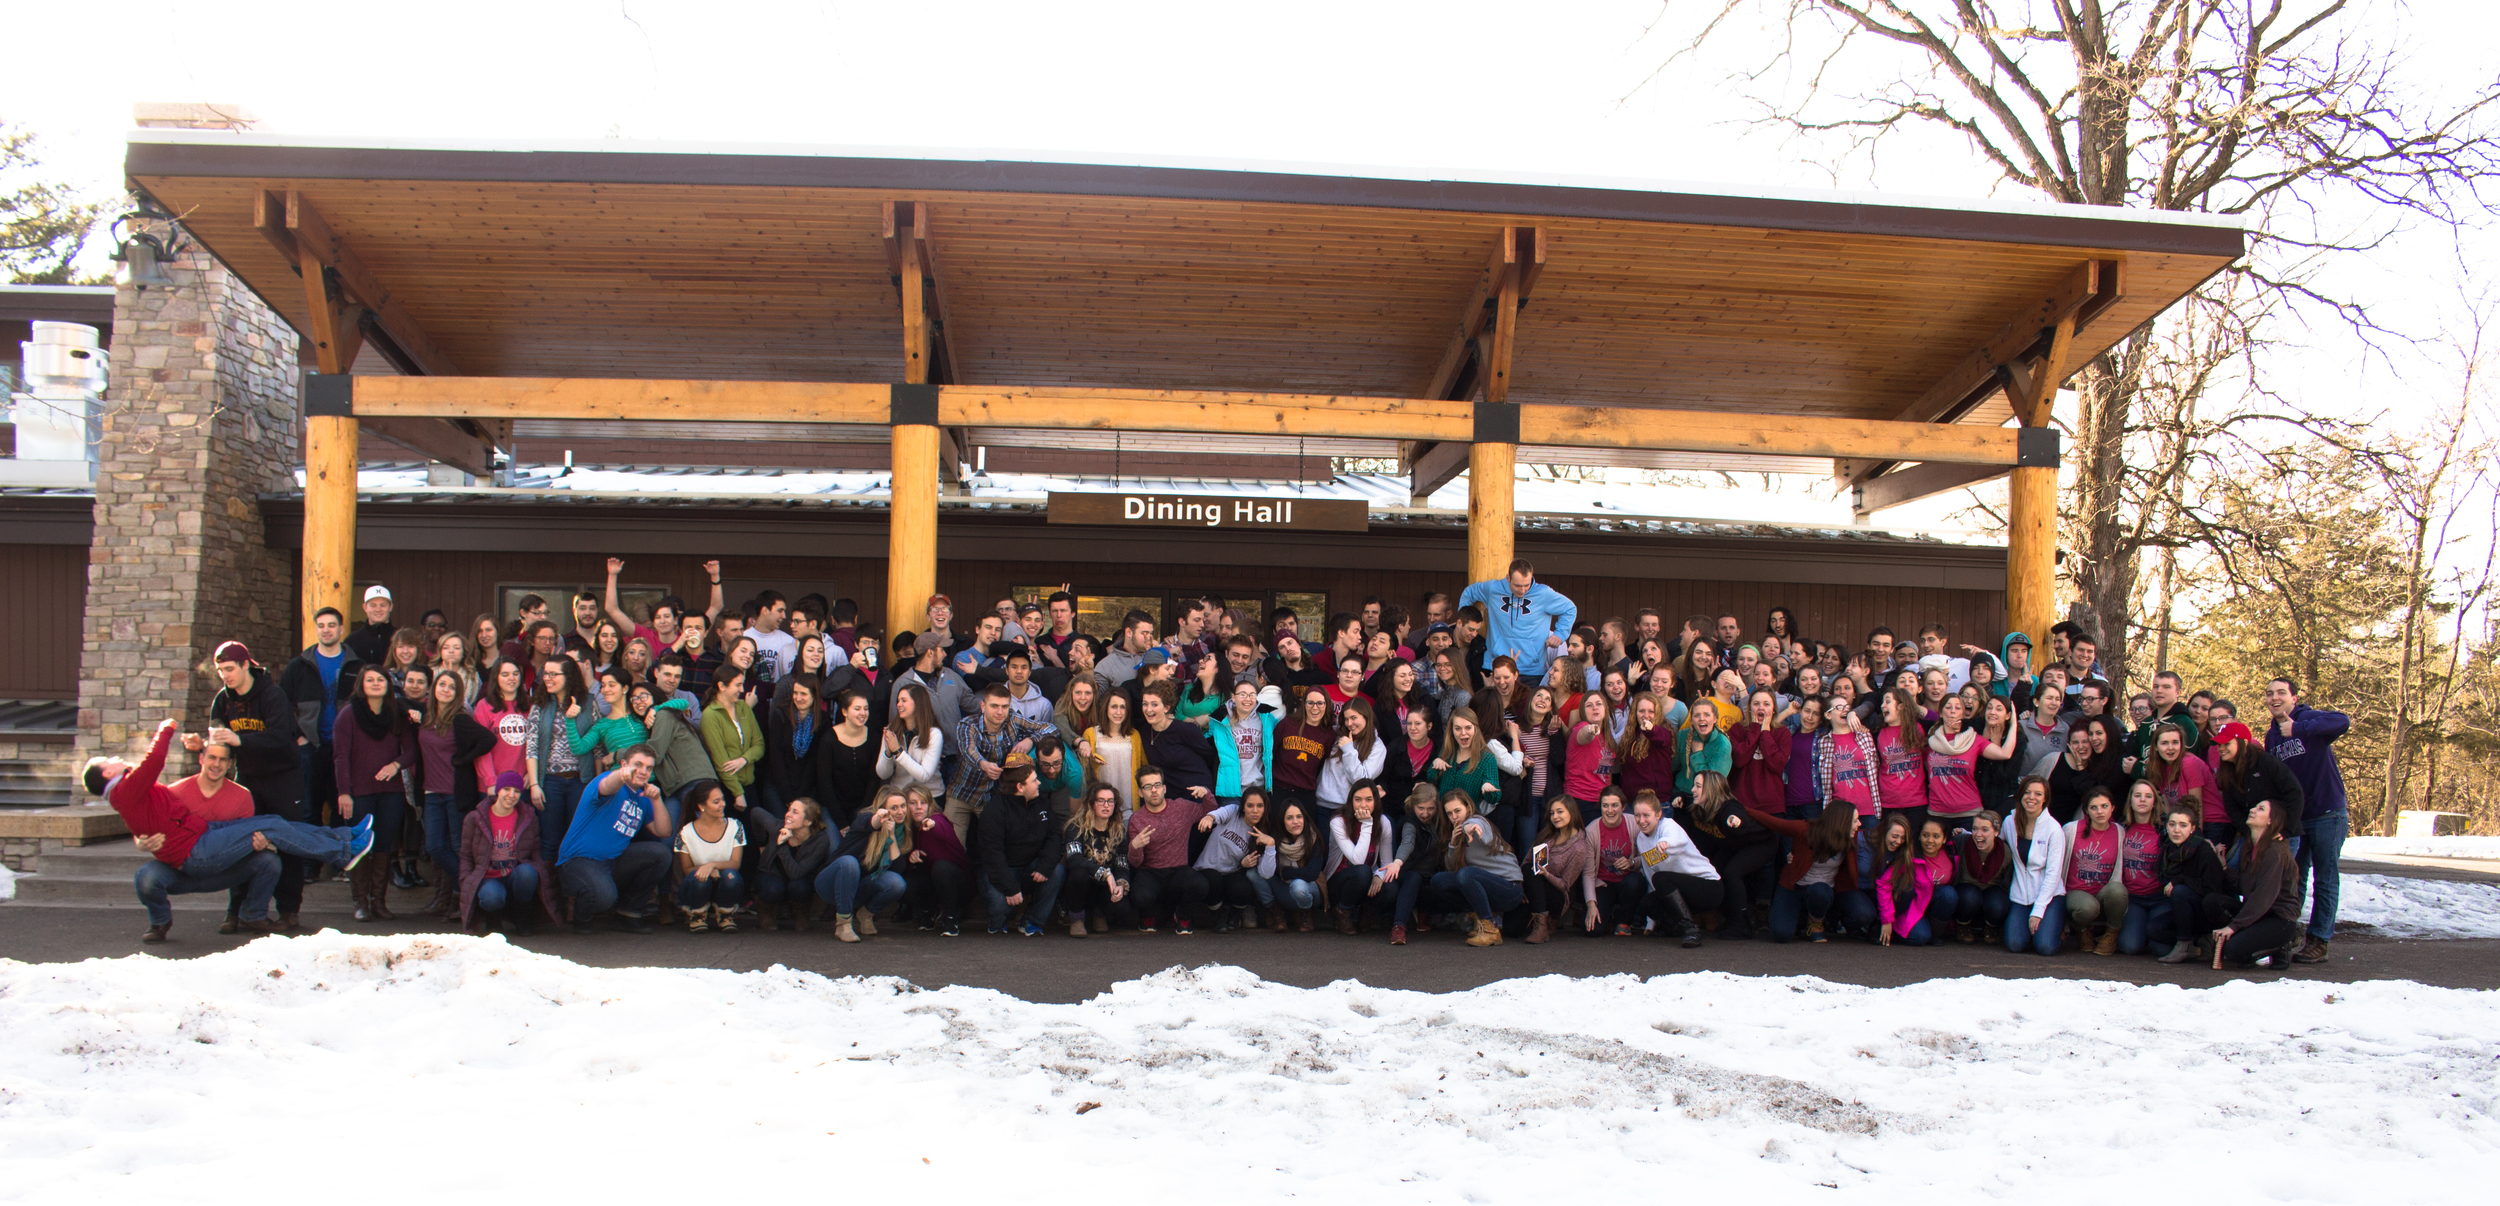 ALL OF THE STUDENTS FROM THE UNIVERSITY OF sT. THOMAS AND UNIVERSITY OF MINNESOTA THAT ATTENDED.IT CAN BE DIFFICULT MANAGING SO MANY PEOPLE FOR JUST ONE PHOTO.